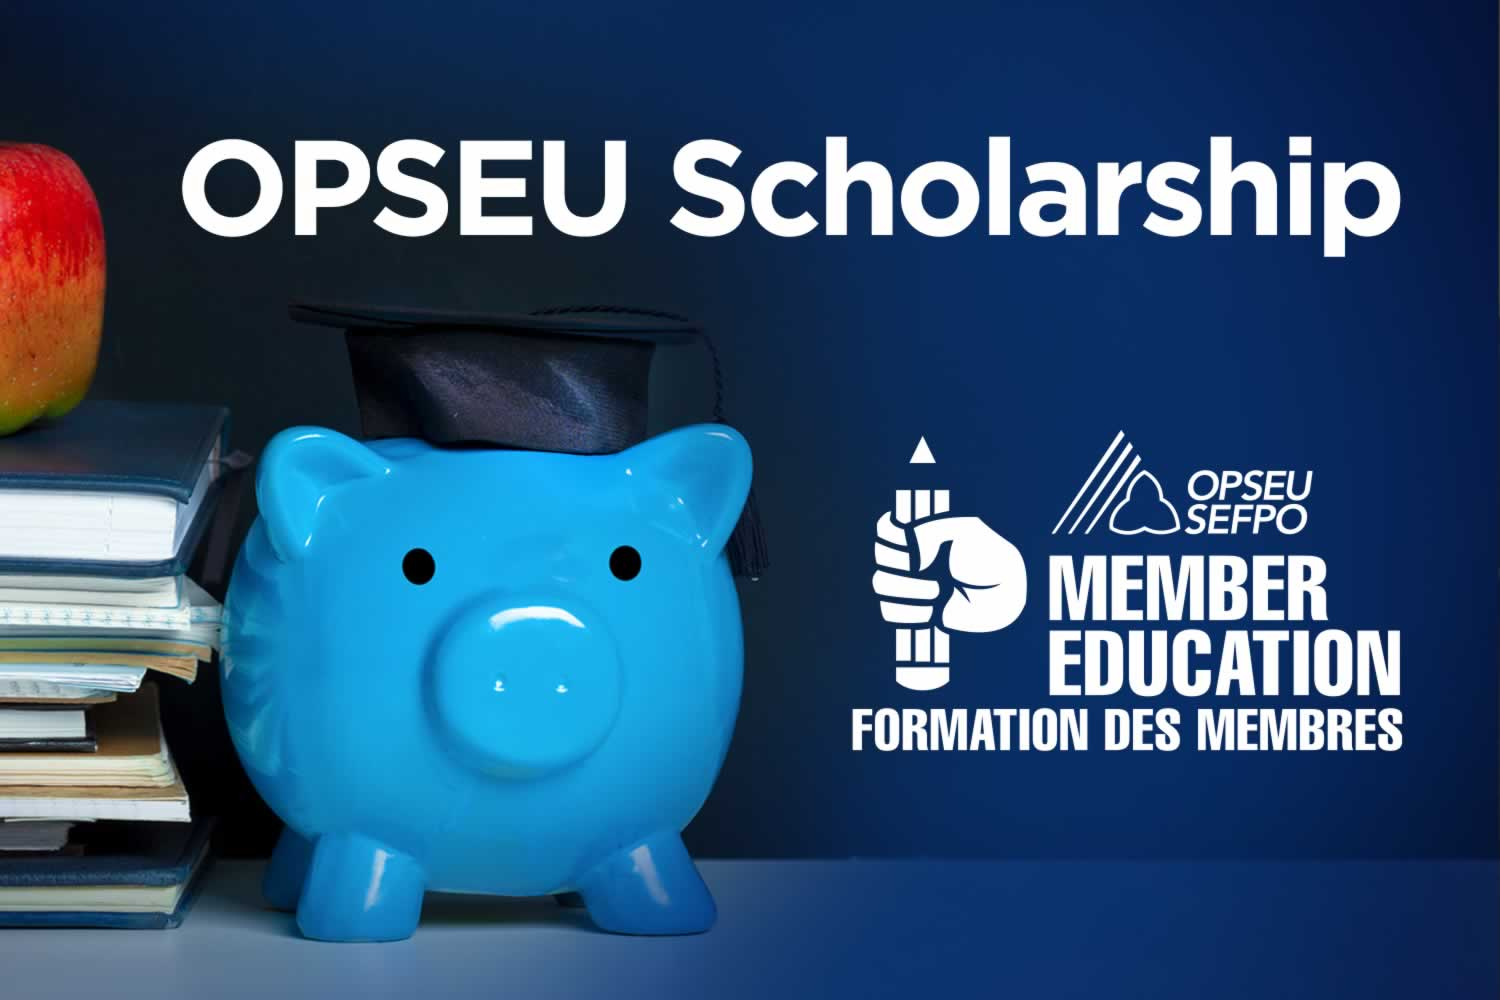 OPSEU Scholarship. Member Education / Formation Des Membres. Image of books, an apple and grad hat